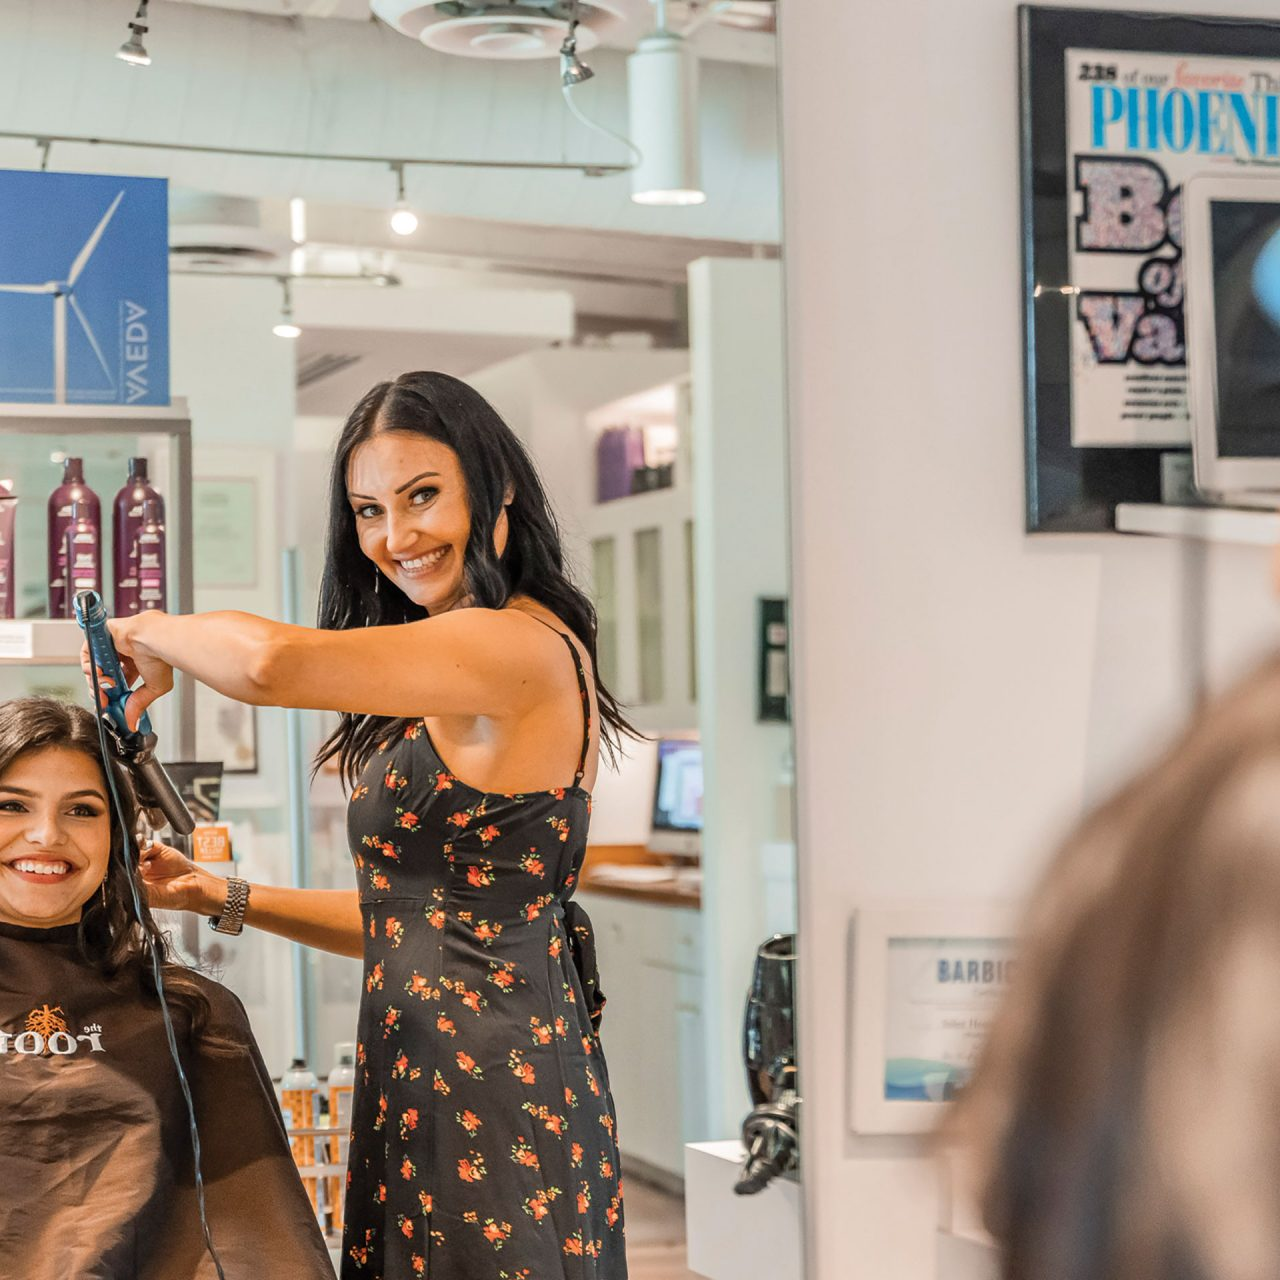 4 Best Hair Salons of the Valley in 2021